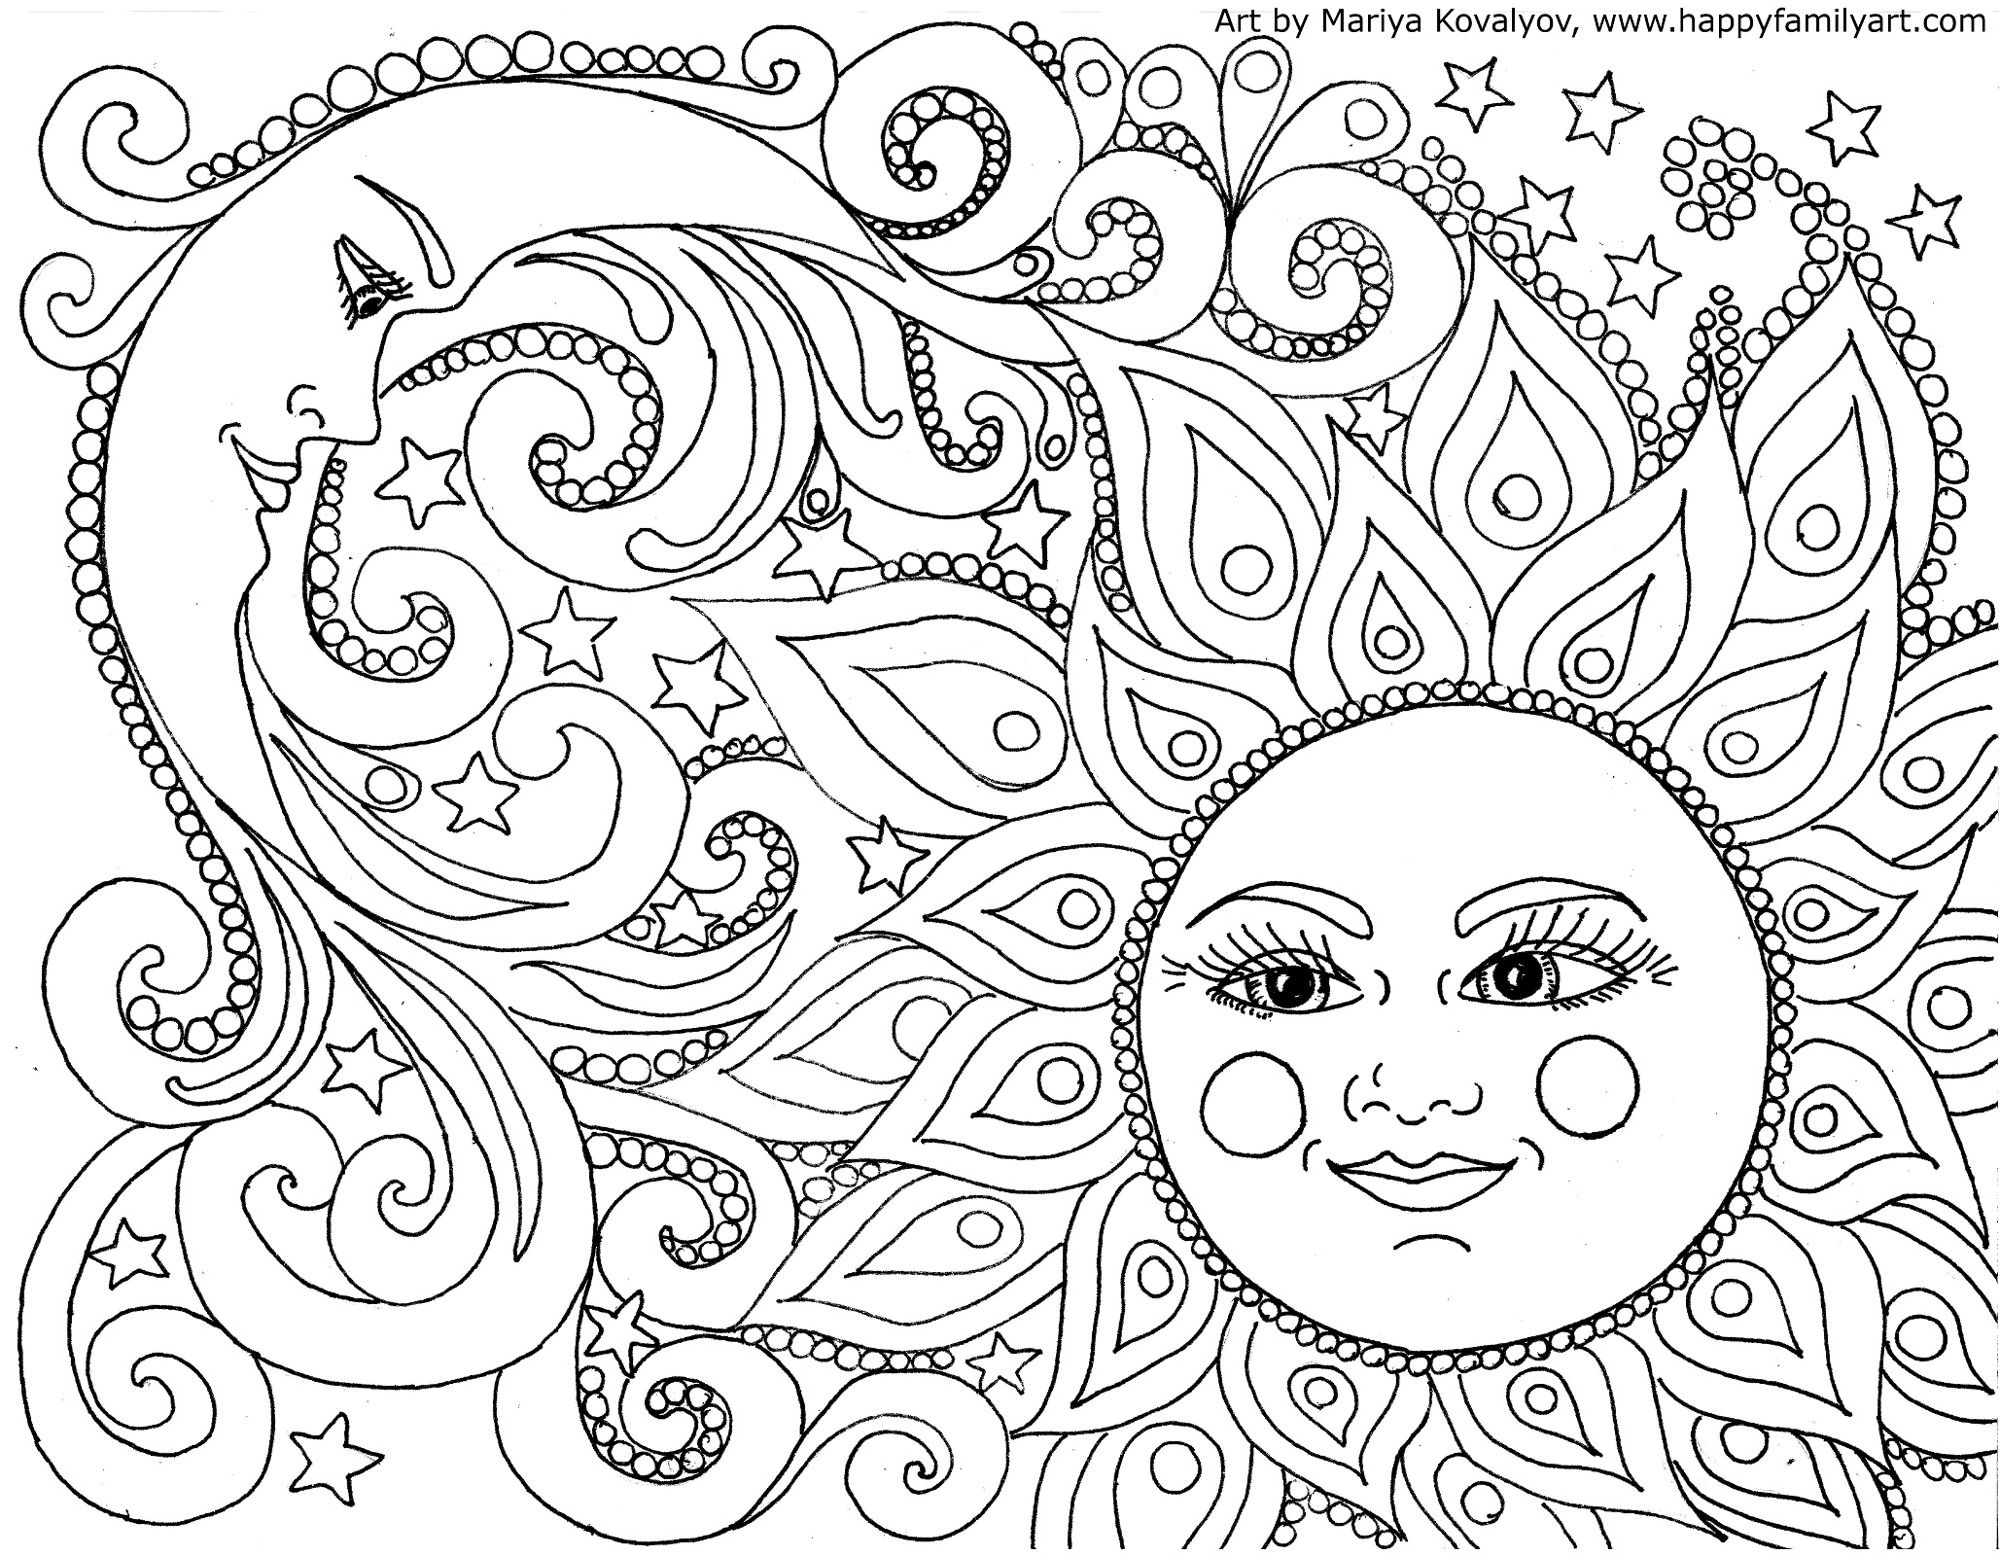 Pinterest christmas adult coloring pages - I Made Many Great Fun And Original Coloring Pages Color Your Heart Out